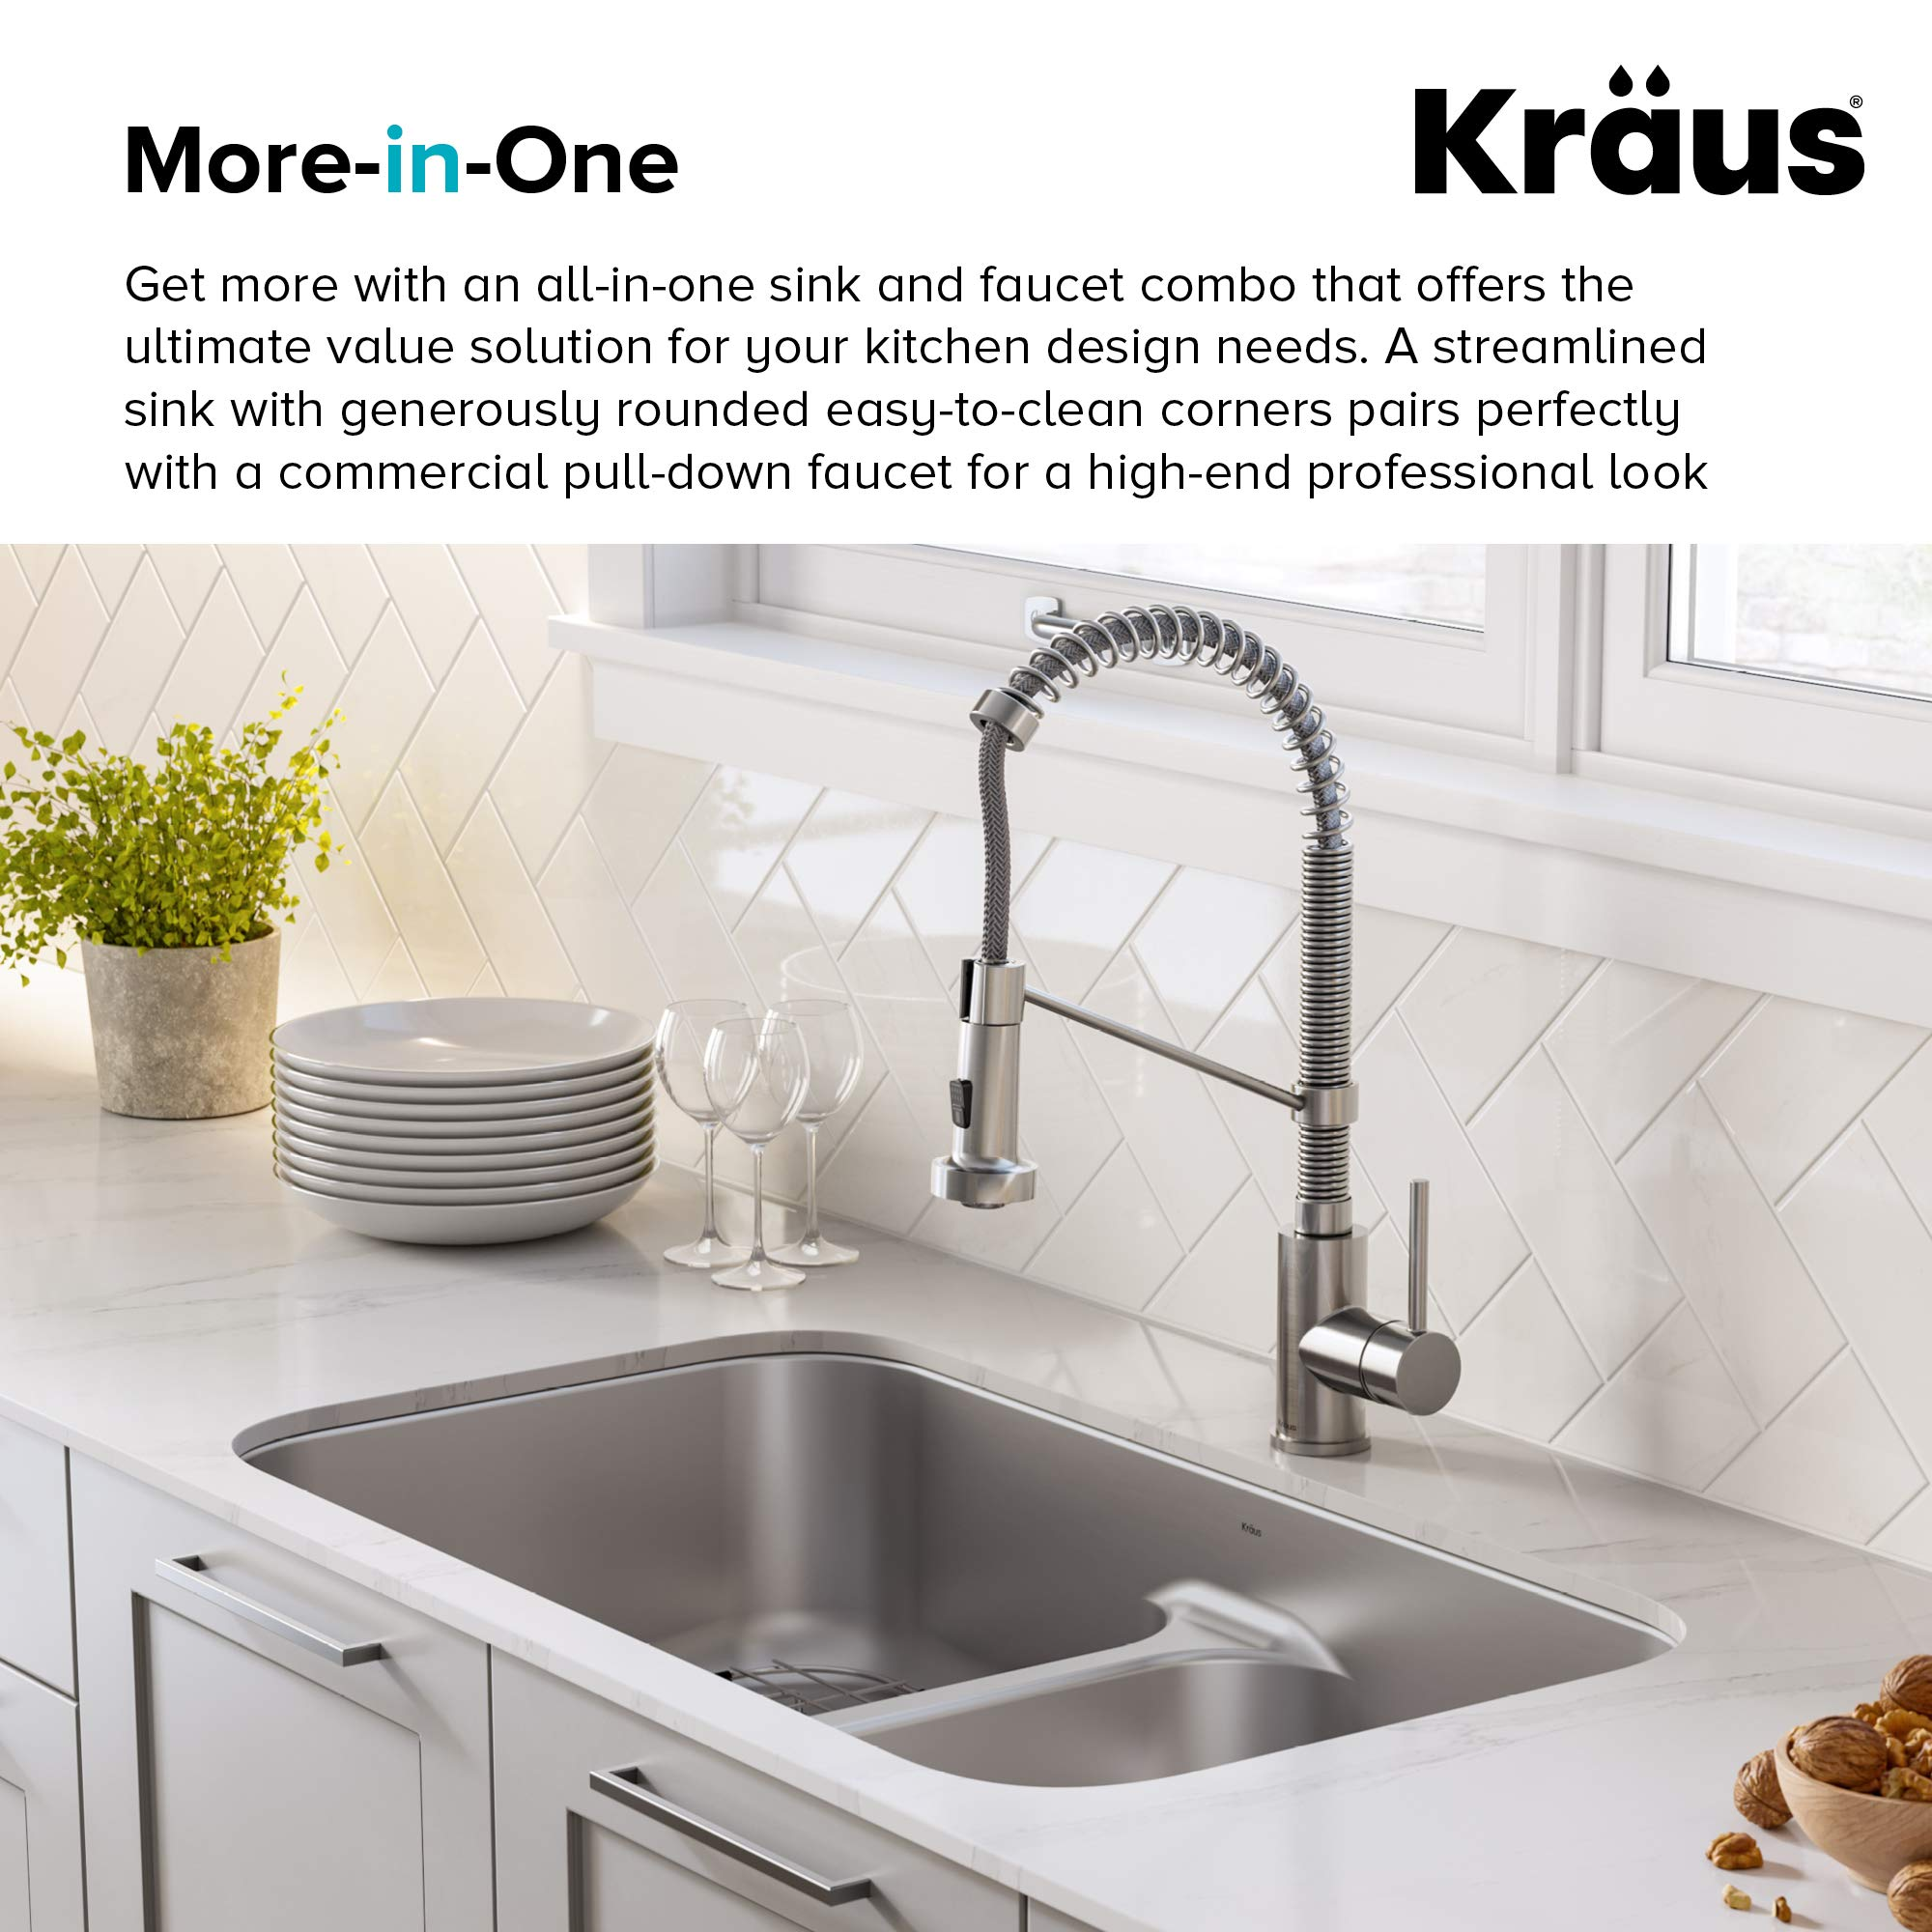 KRAUS KCA-1200 Ellis Kitchen Combo Set with 33-inch 16 Gauge Undermount Kitchen Sink and Bolden 18-inch Pull-Down Commercial Style Kitchen Faucet, Stainless Steel Finish by Kraus (Image #8)